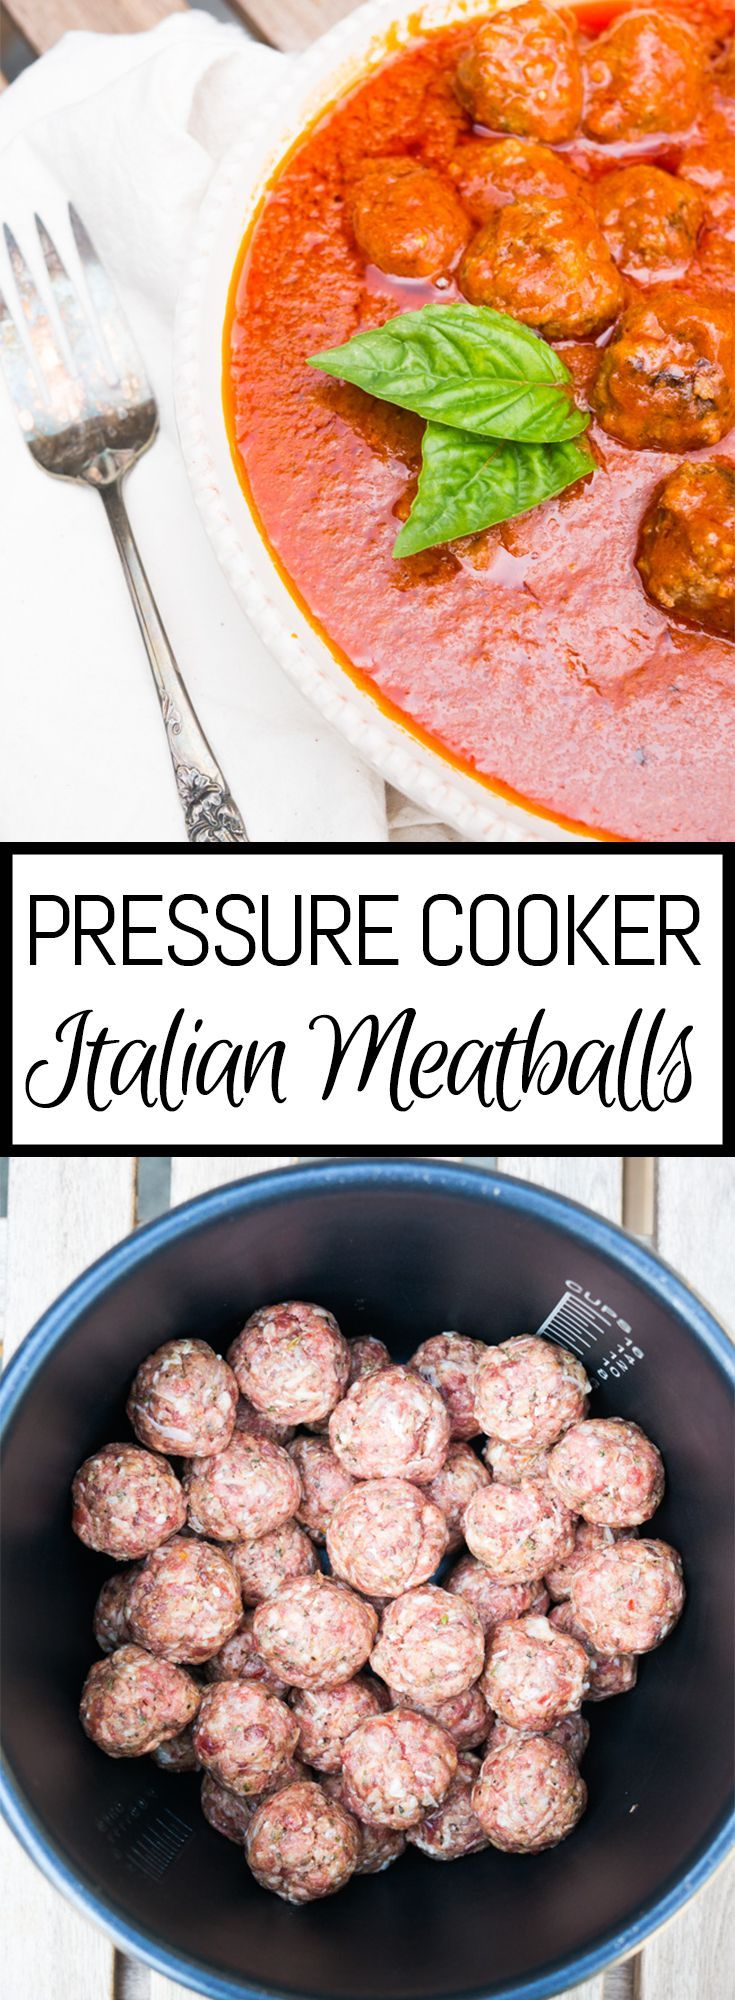 Pressure Cooker Italian Meatballs. The most tender meatballs you've ever had in your life and cooked in only 5 minutes!